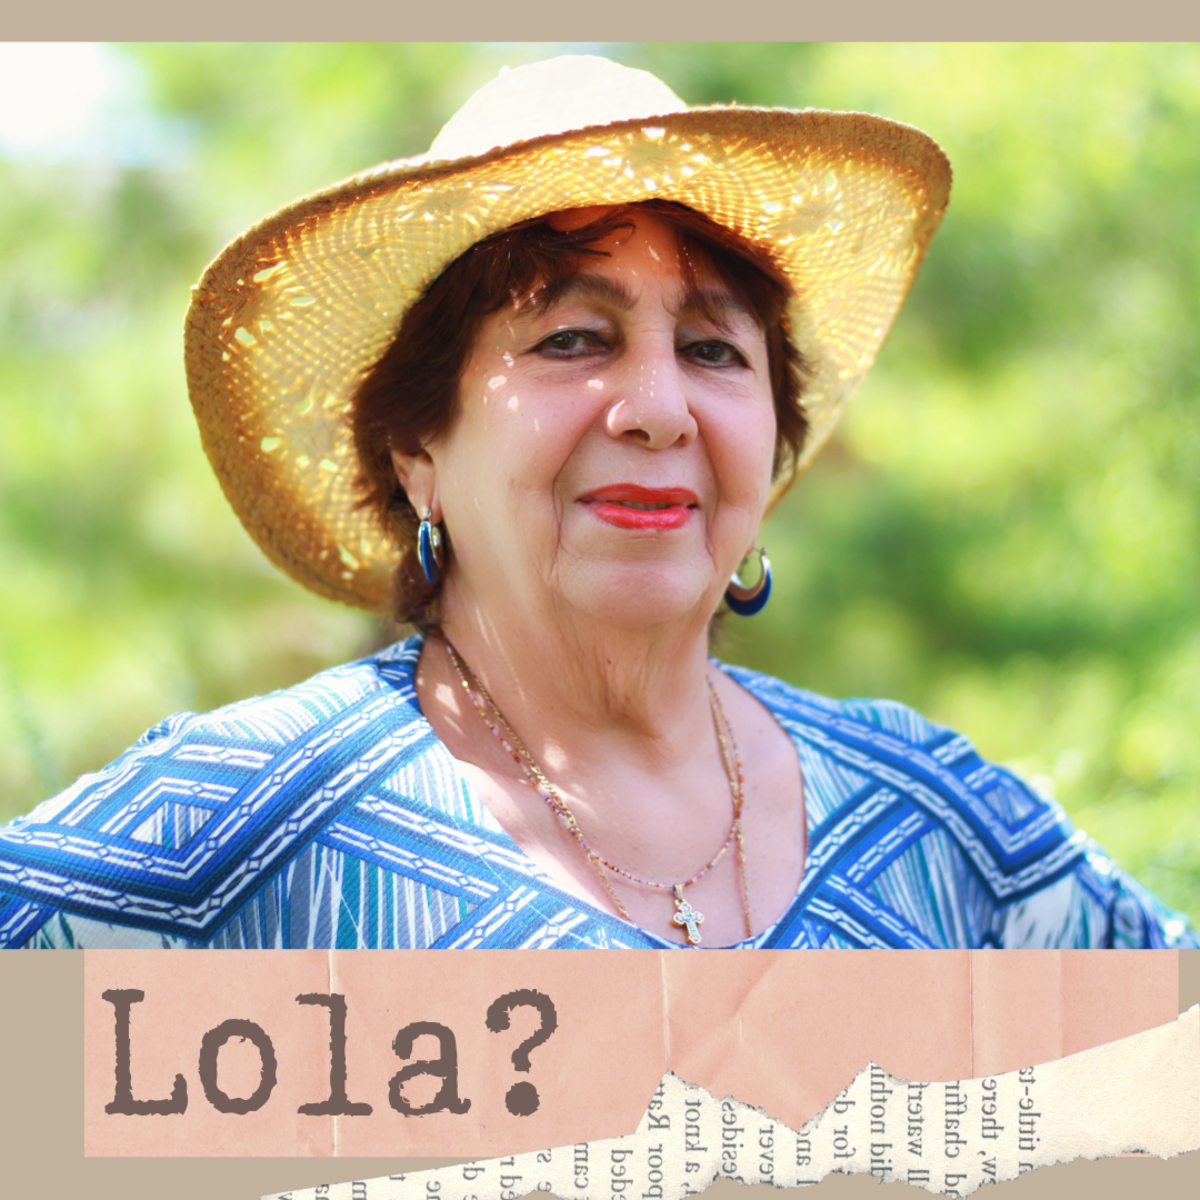 Are you a Lola?